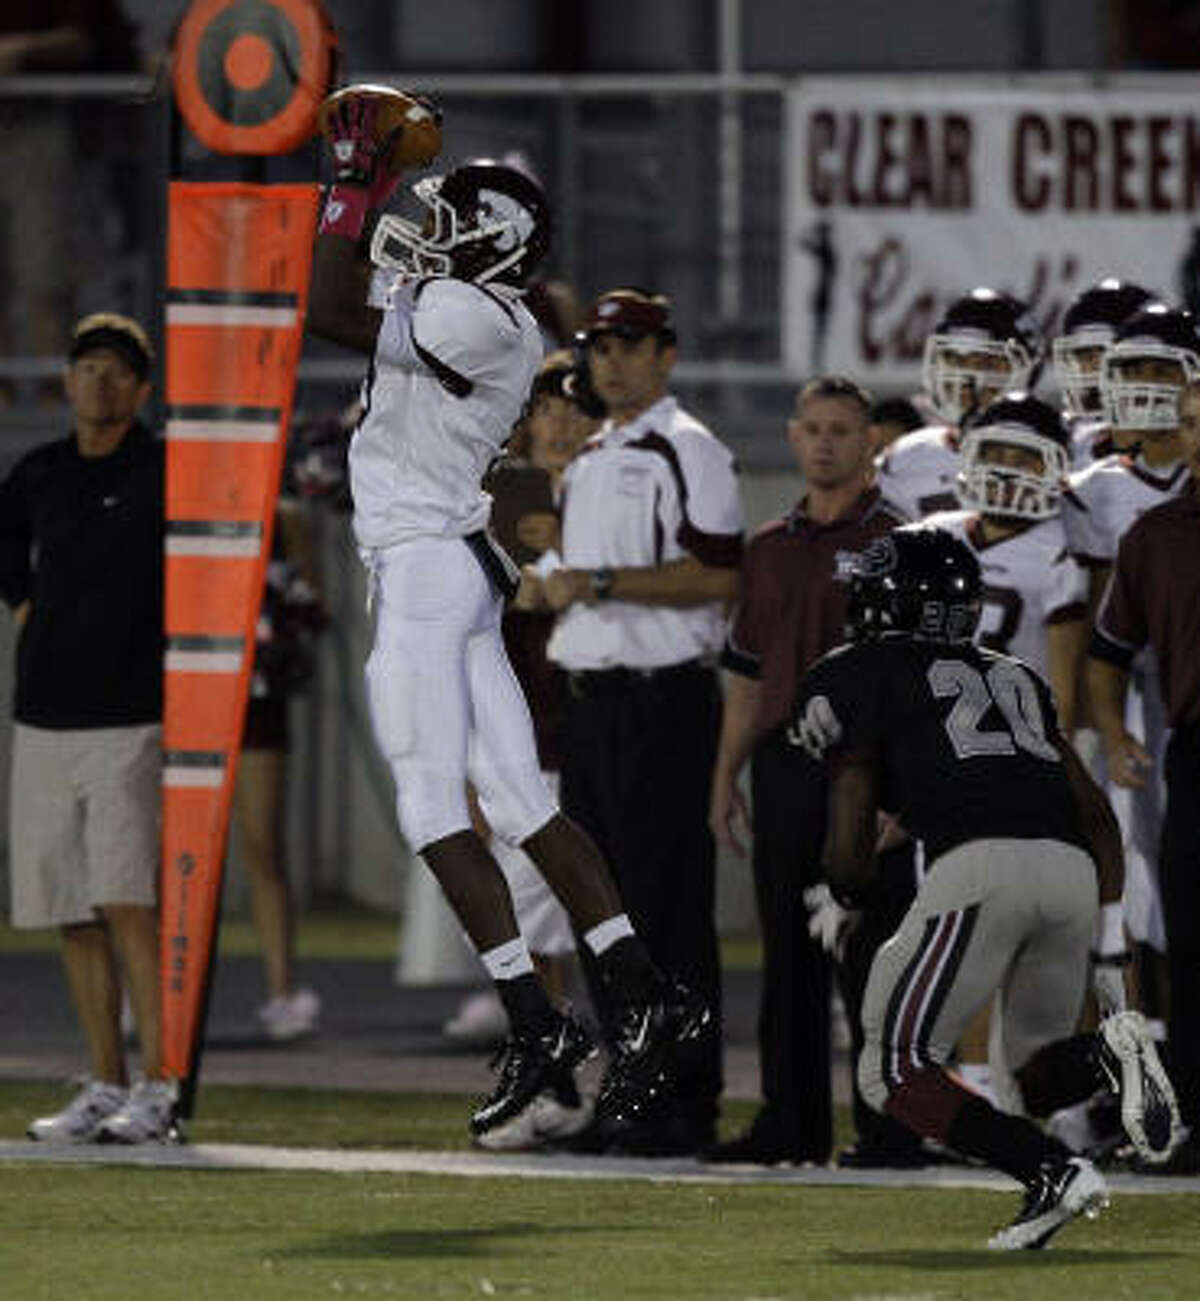 Clear Creek's Dion Lewis hauls in a pass in front of Pearland's Jessie Rayford.